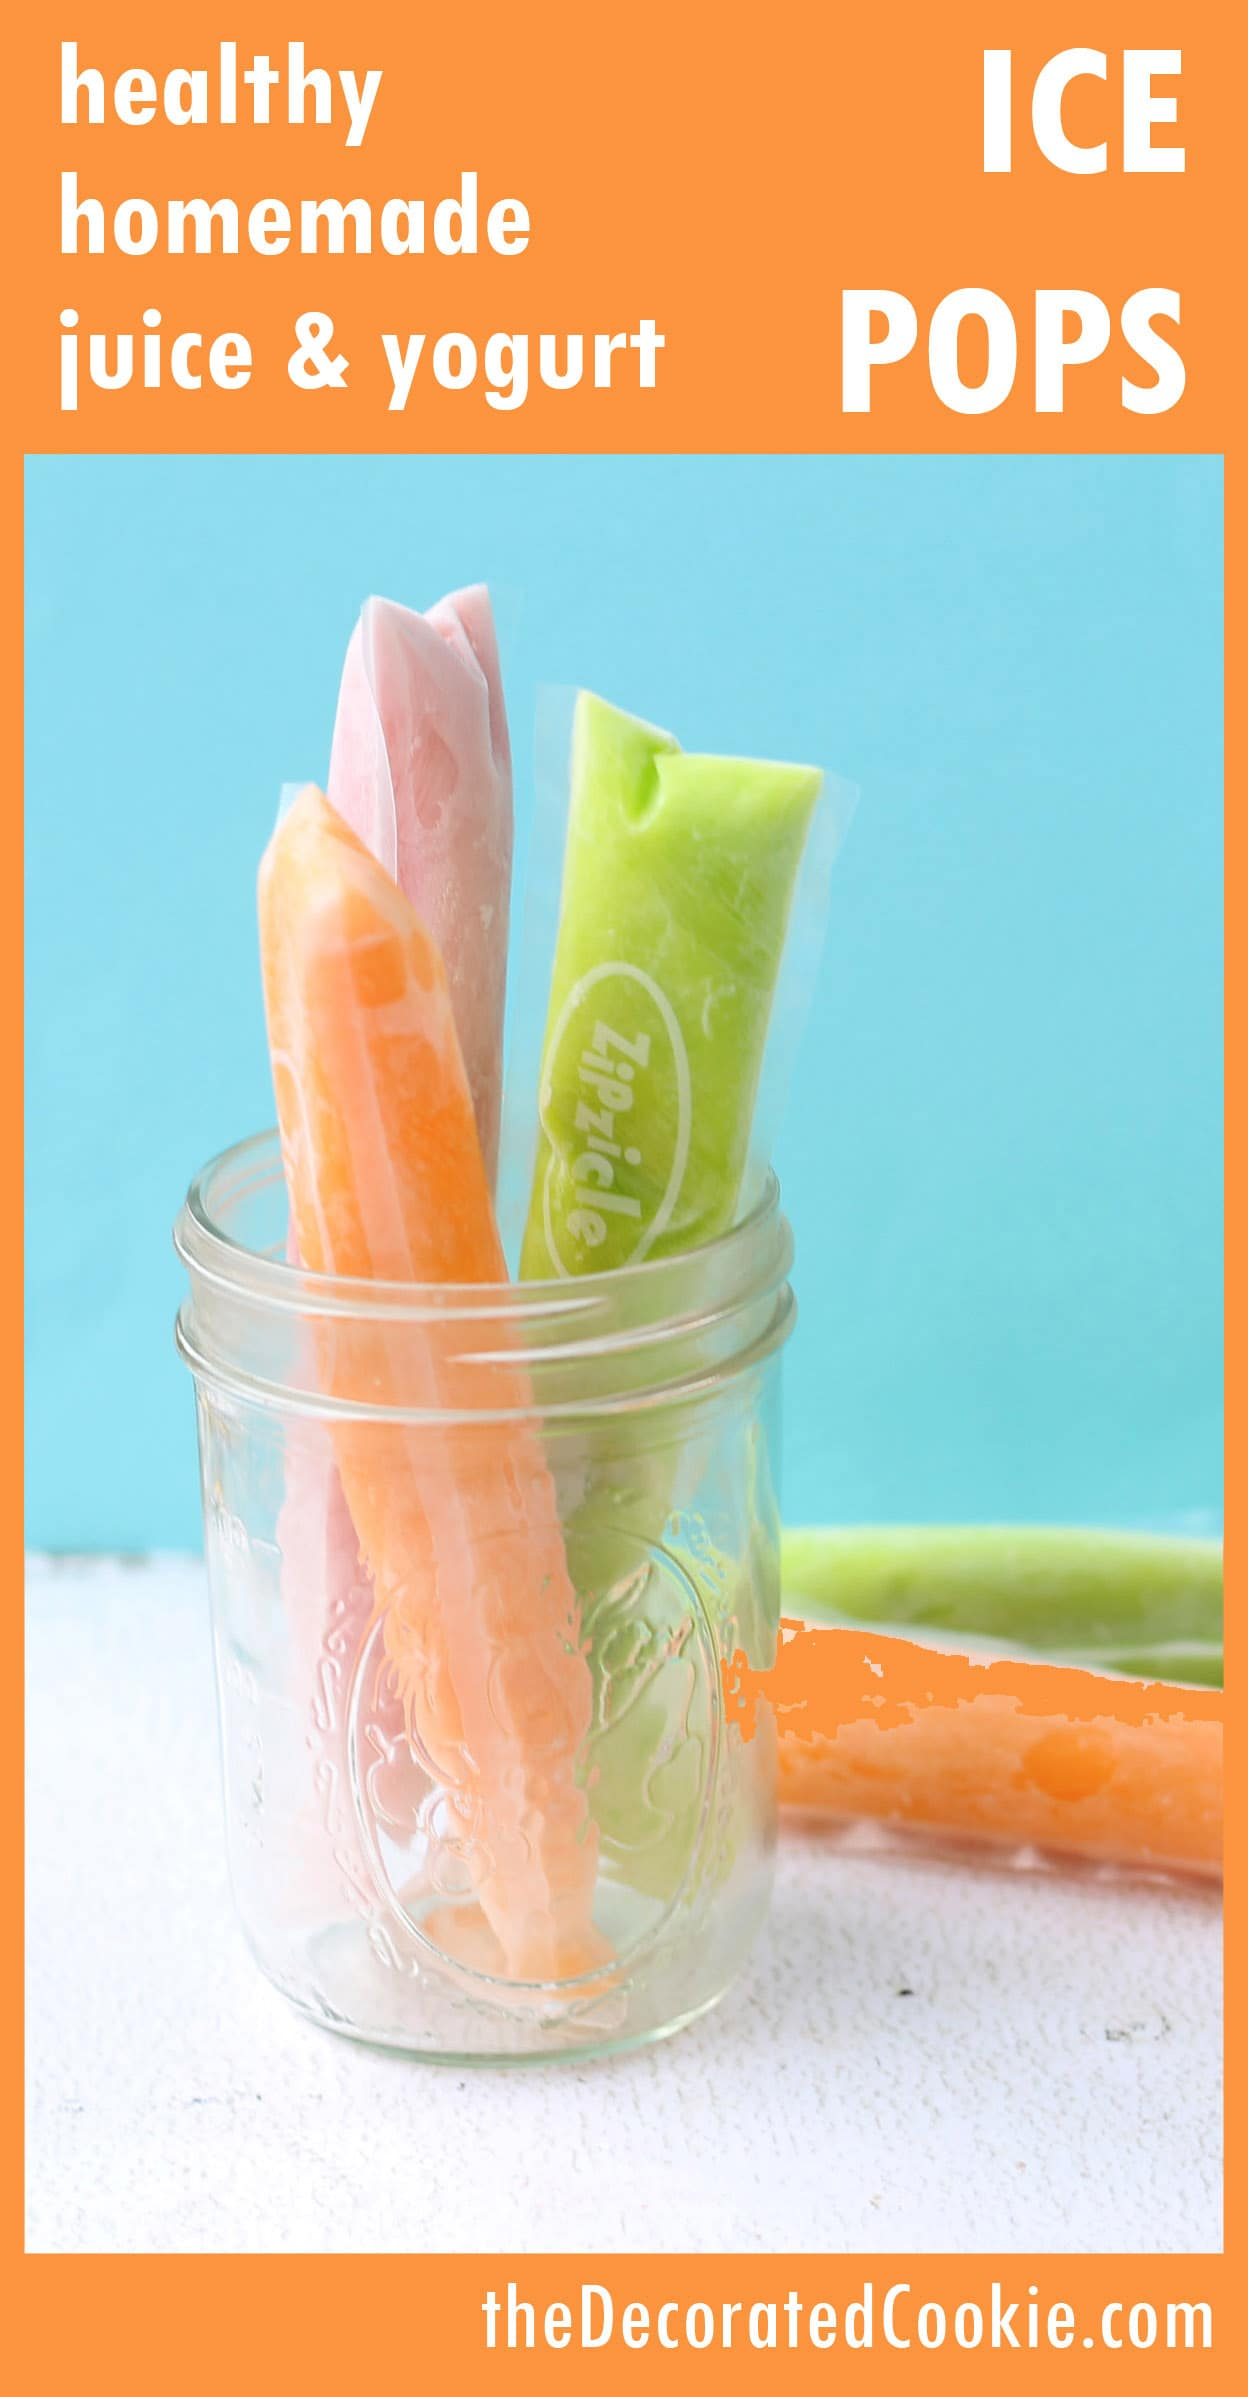 healthy homemade ice pops for summer popsicles with juice and yogurt